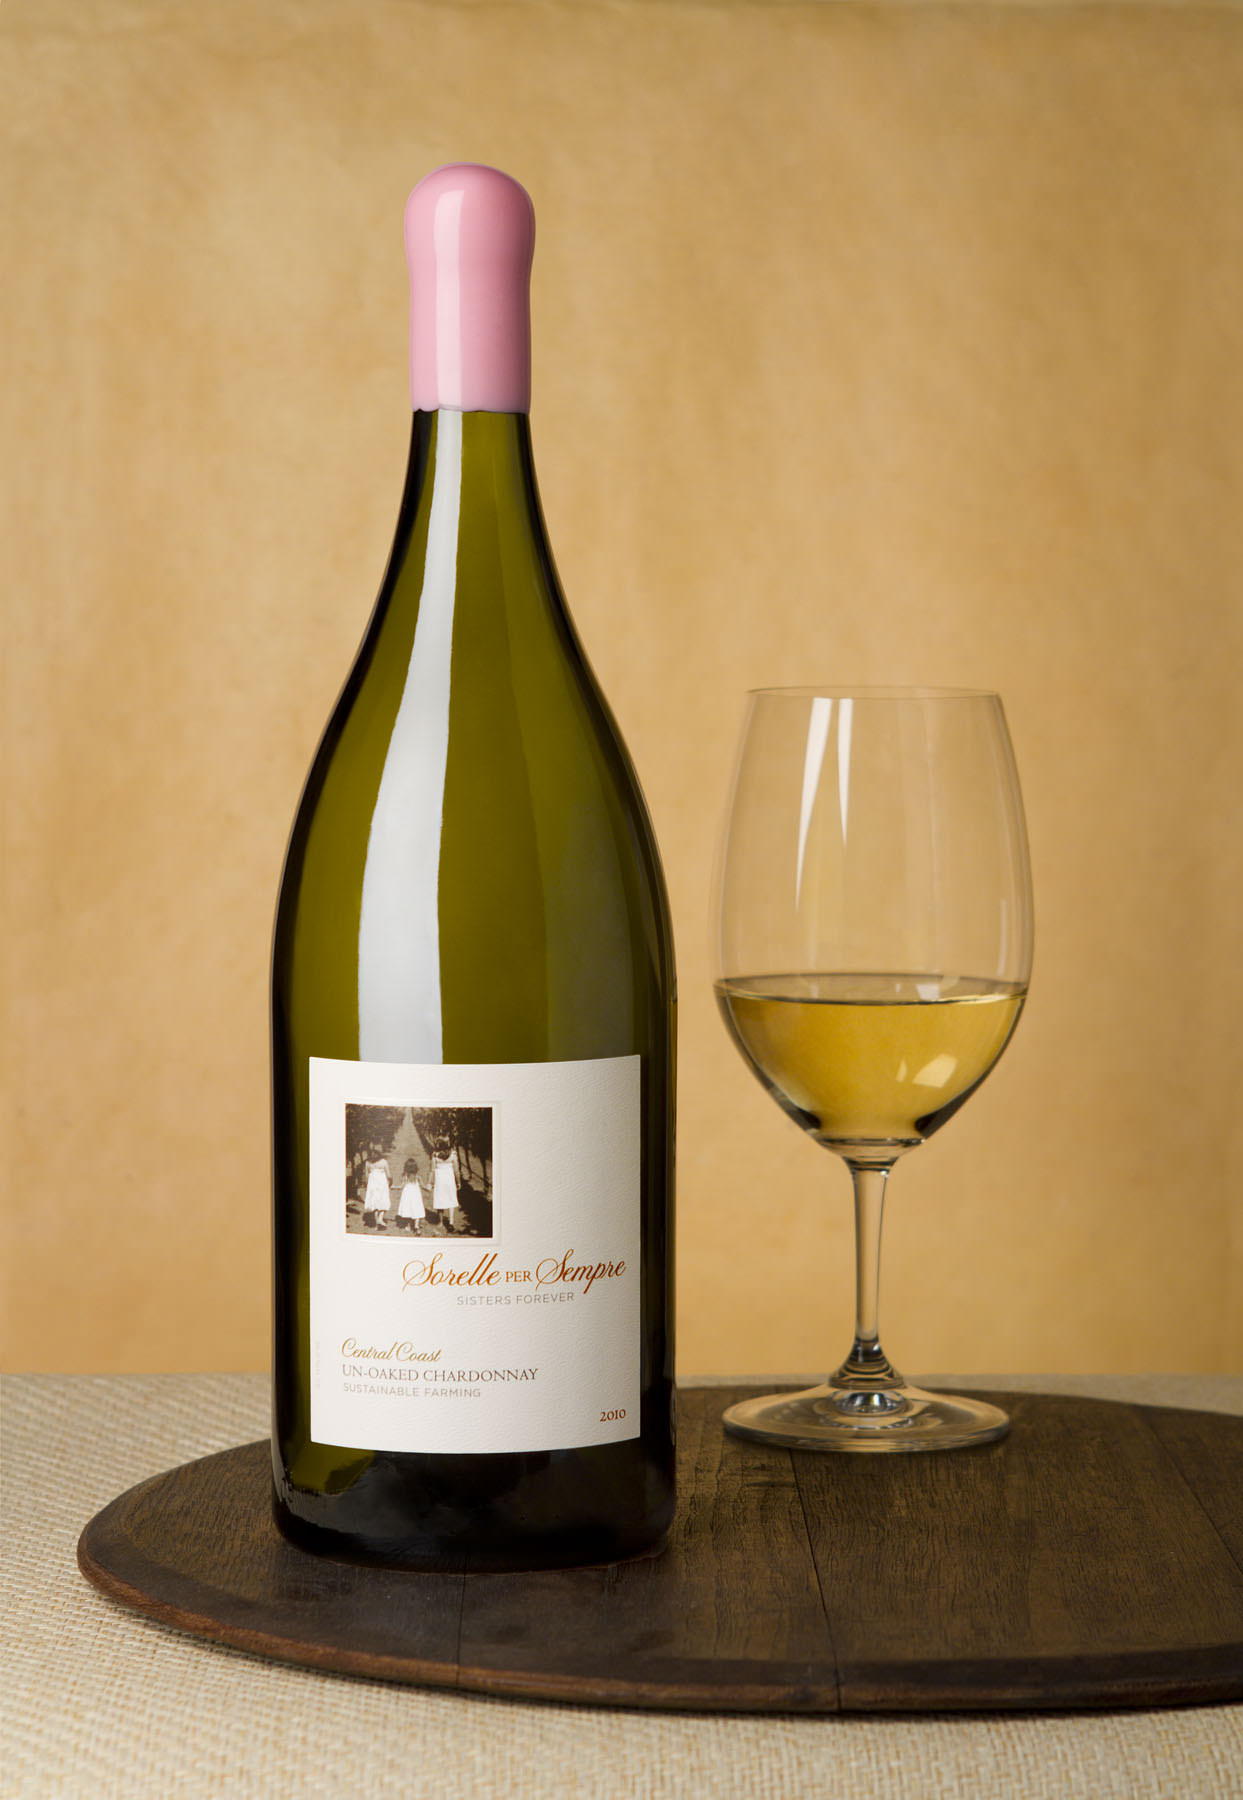 Clair Images - San Luis Obispo Product Photography - Donati Family Vineyards